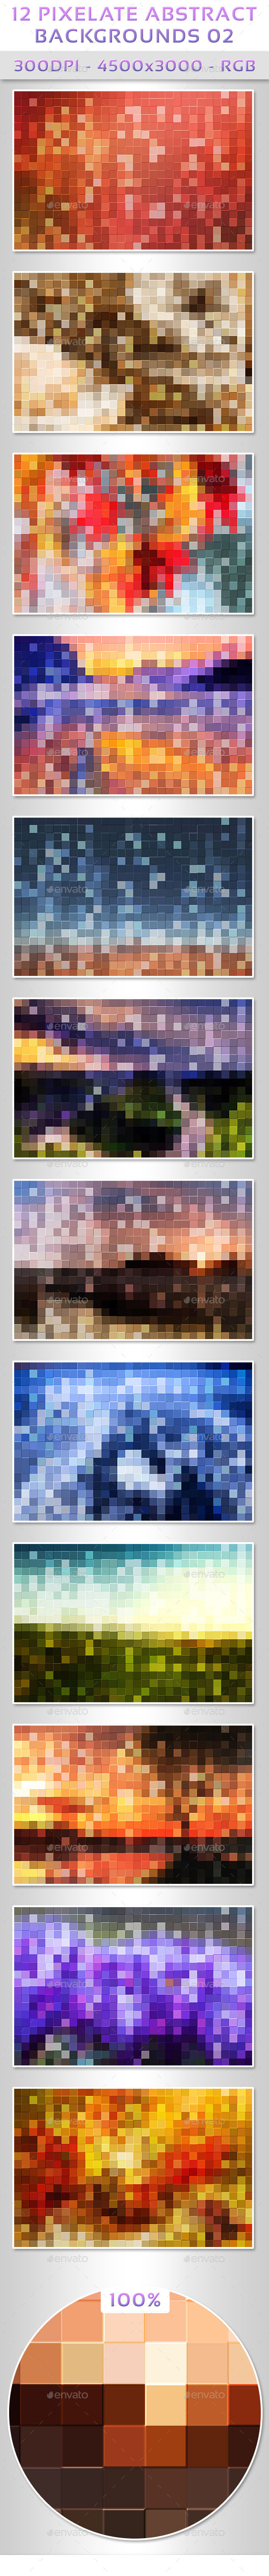 GraphicRiver 12 Pixelate Abstract Backgrounds 02 9742399